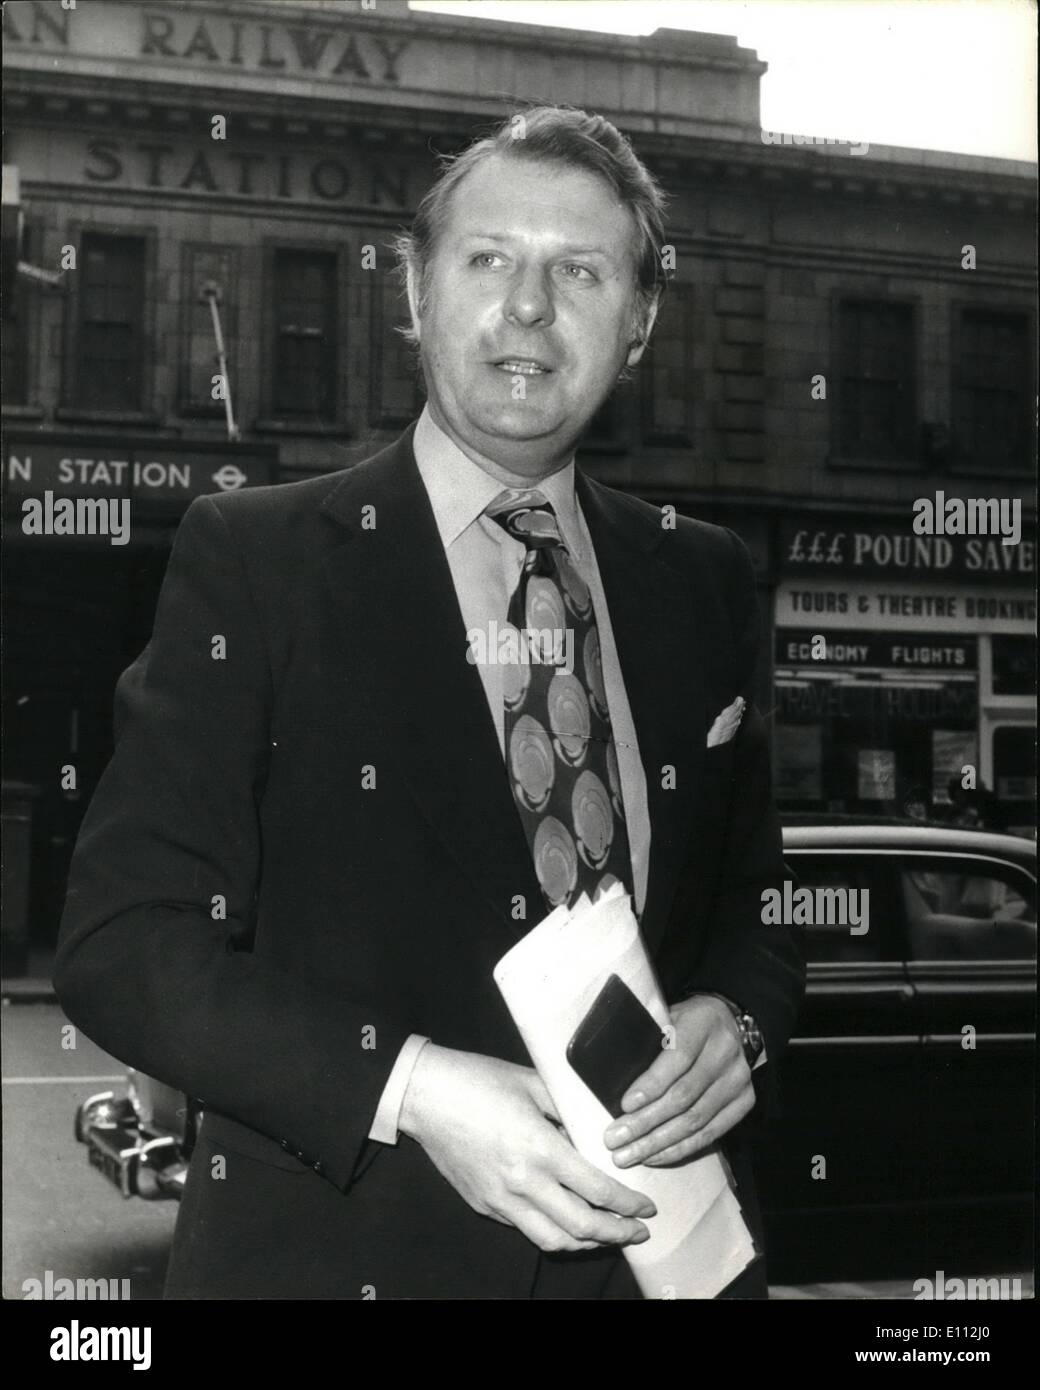 May 05, 1975 - State Industry Leaders Meeting; Leaders of nationalised industries were this afternoon holding a meeting at the British Steel Corporation. Prior to the meeting they had lunch at the great western hotel, Paddinton. Photo Shows Mr. Richard Marsh, British Rail Chairman, arriving for today's lunch. - Stock Image